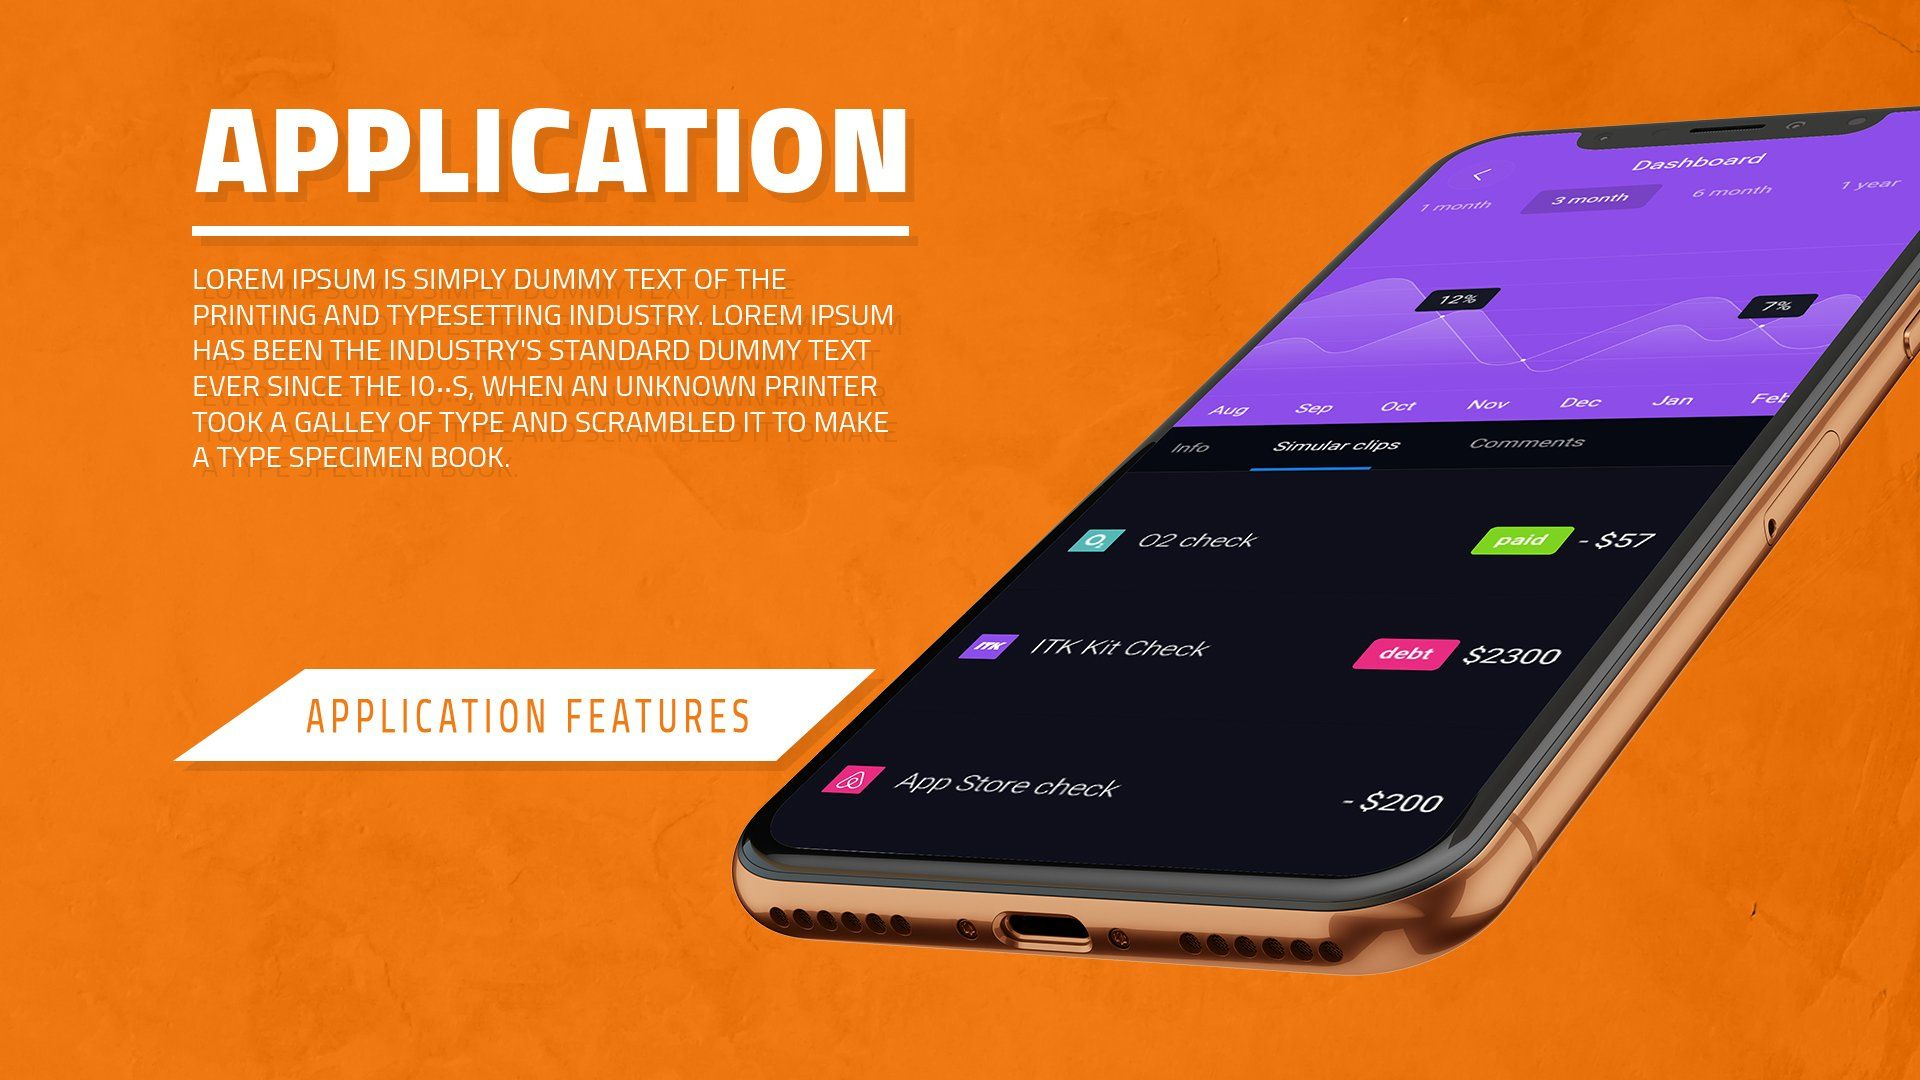 Download Phone Apps Mockup Yellowimages